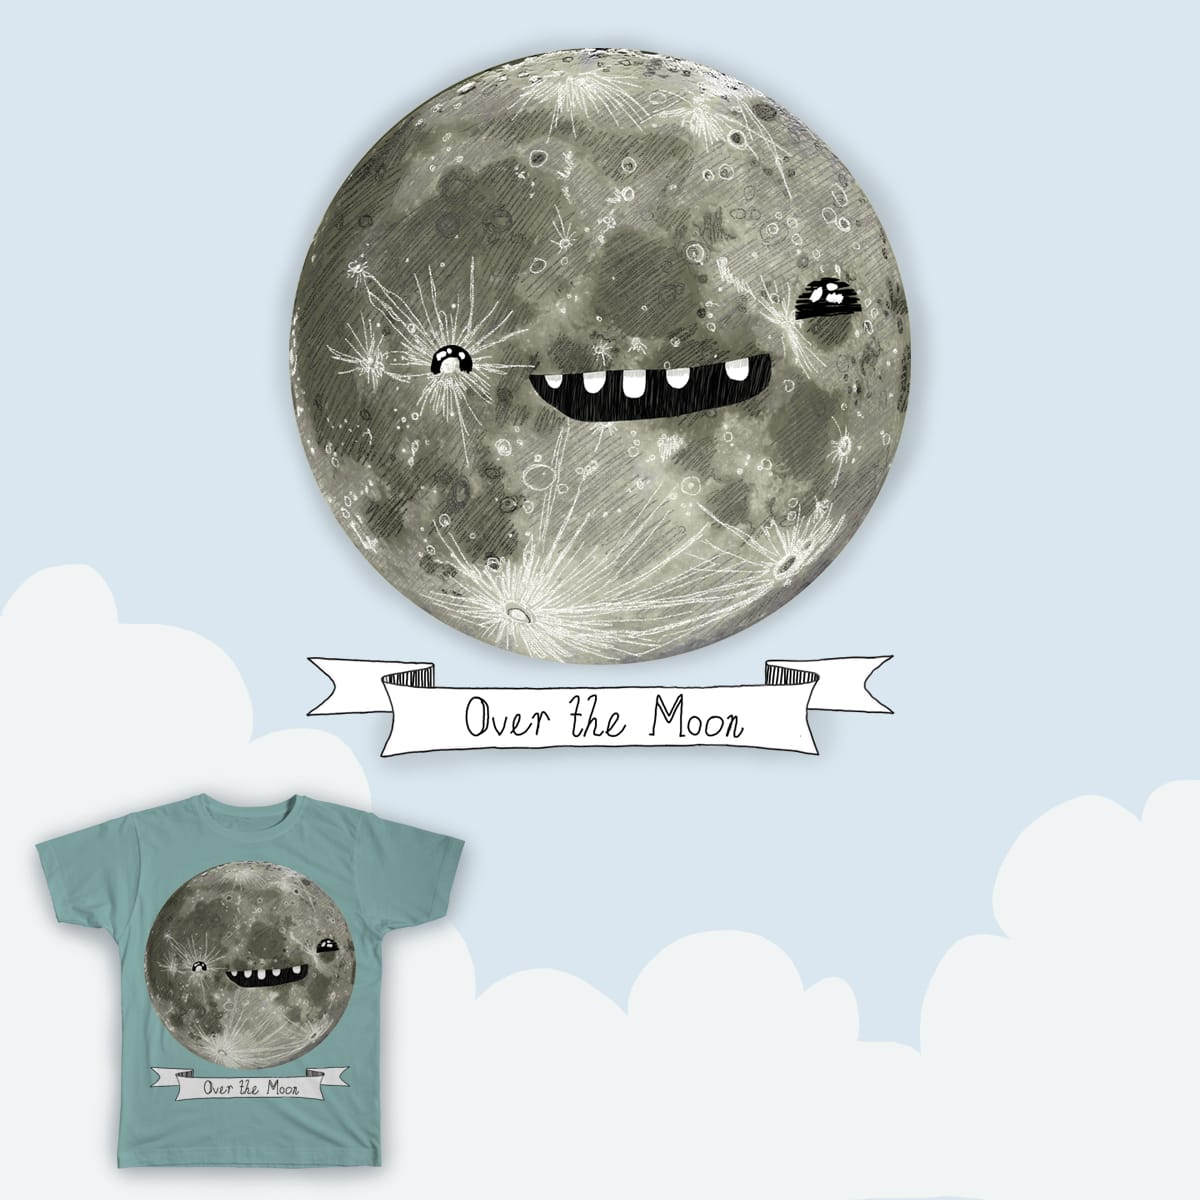 Feeling Over the Moon by cococrisis on Threadless